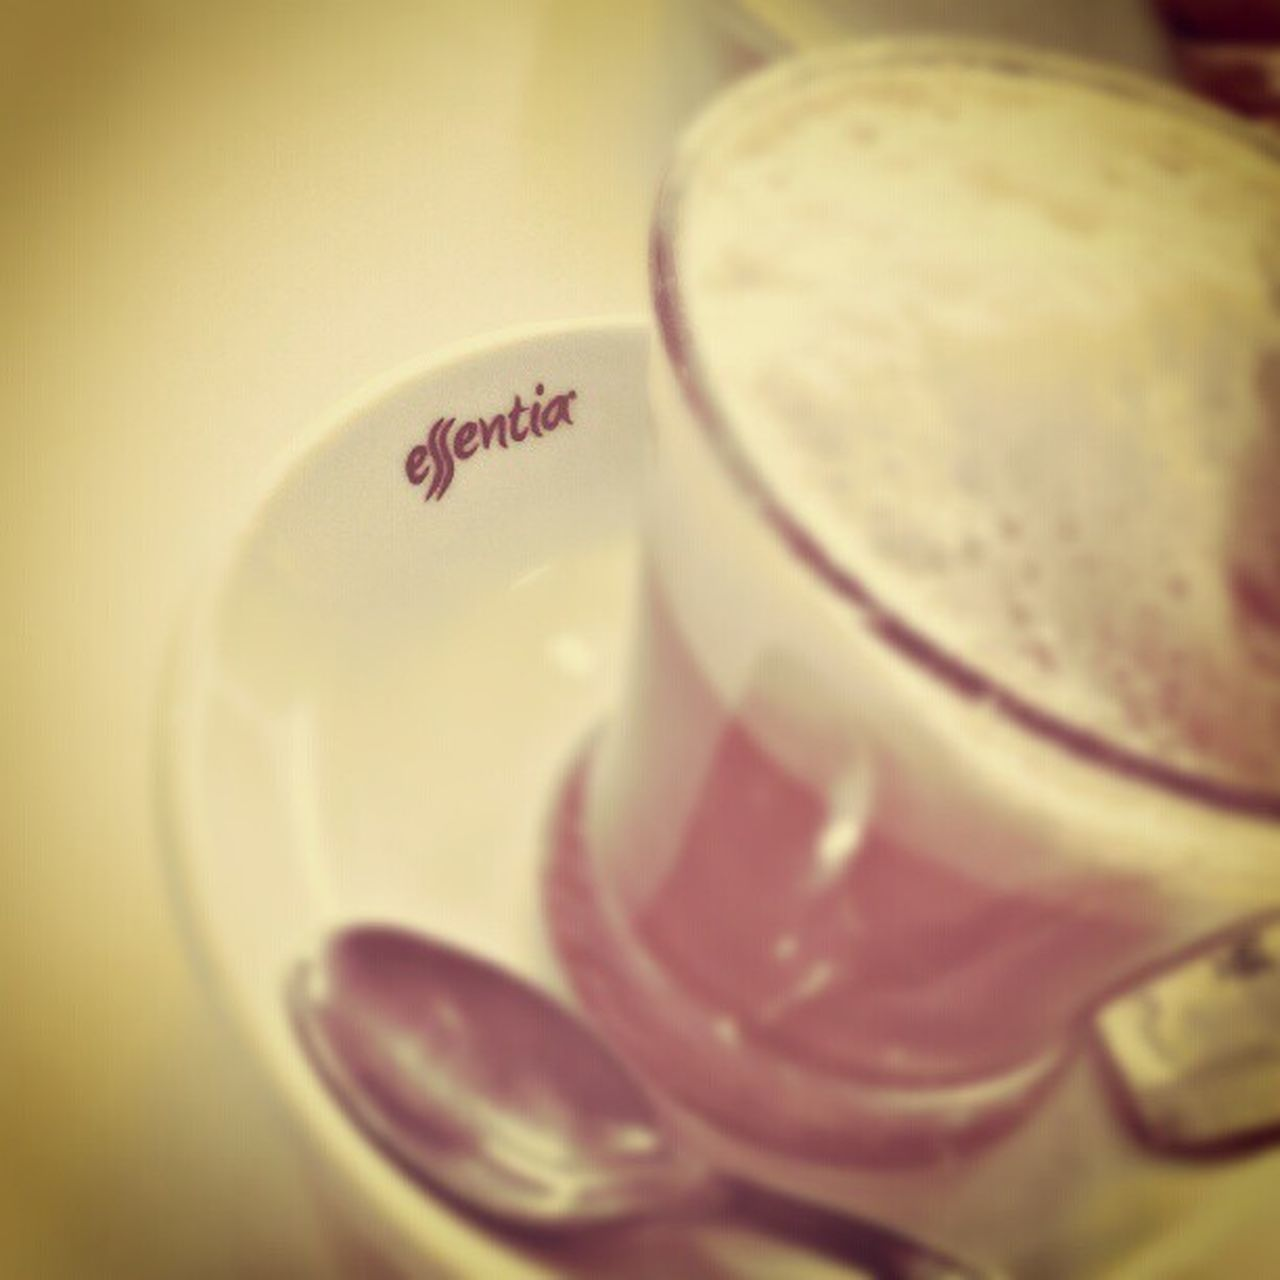 food and drink, selective focus, close-up, drink, no people, text, indoors, freshness, healthy eating, food, frothy drink, day